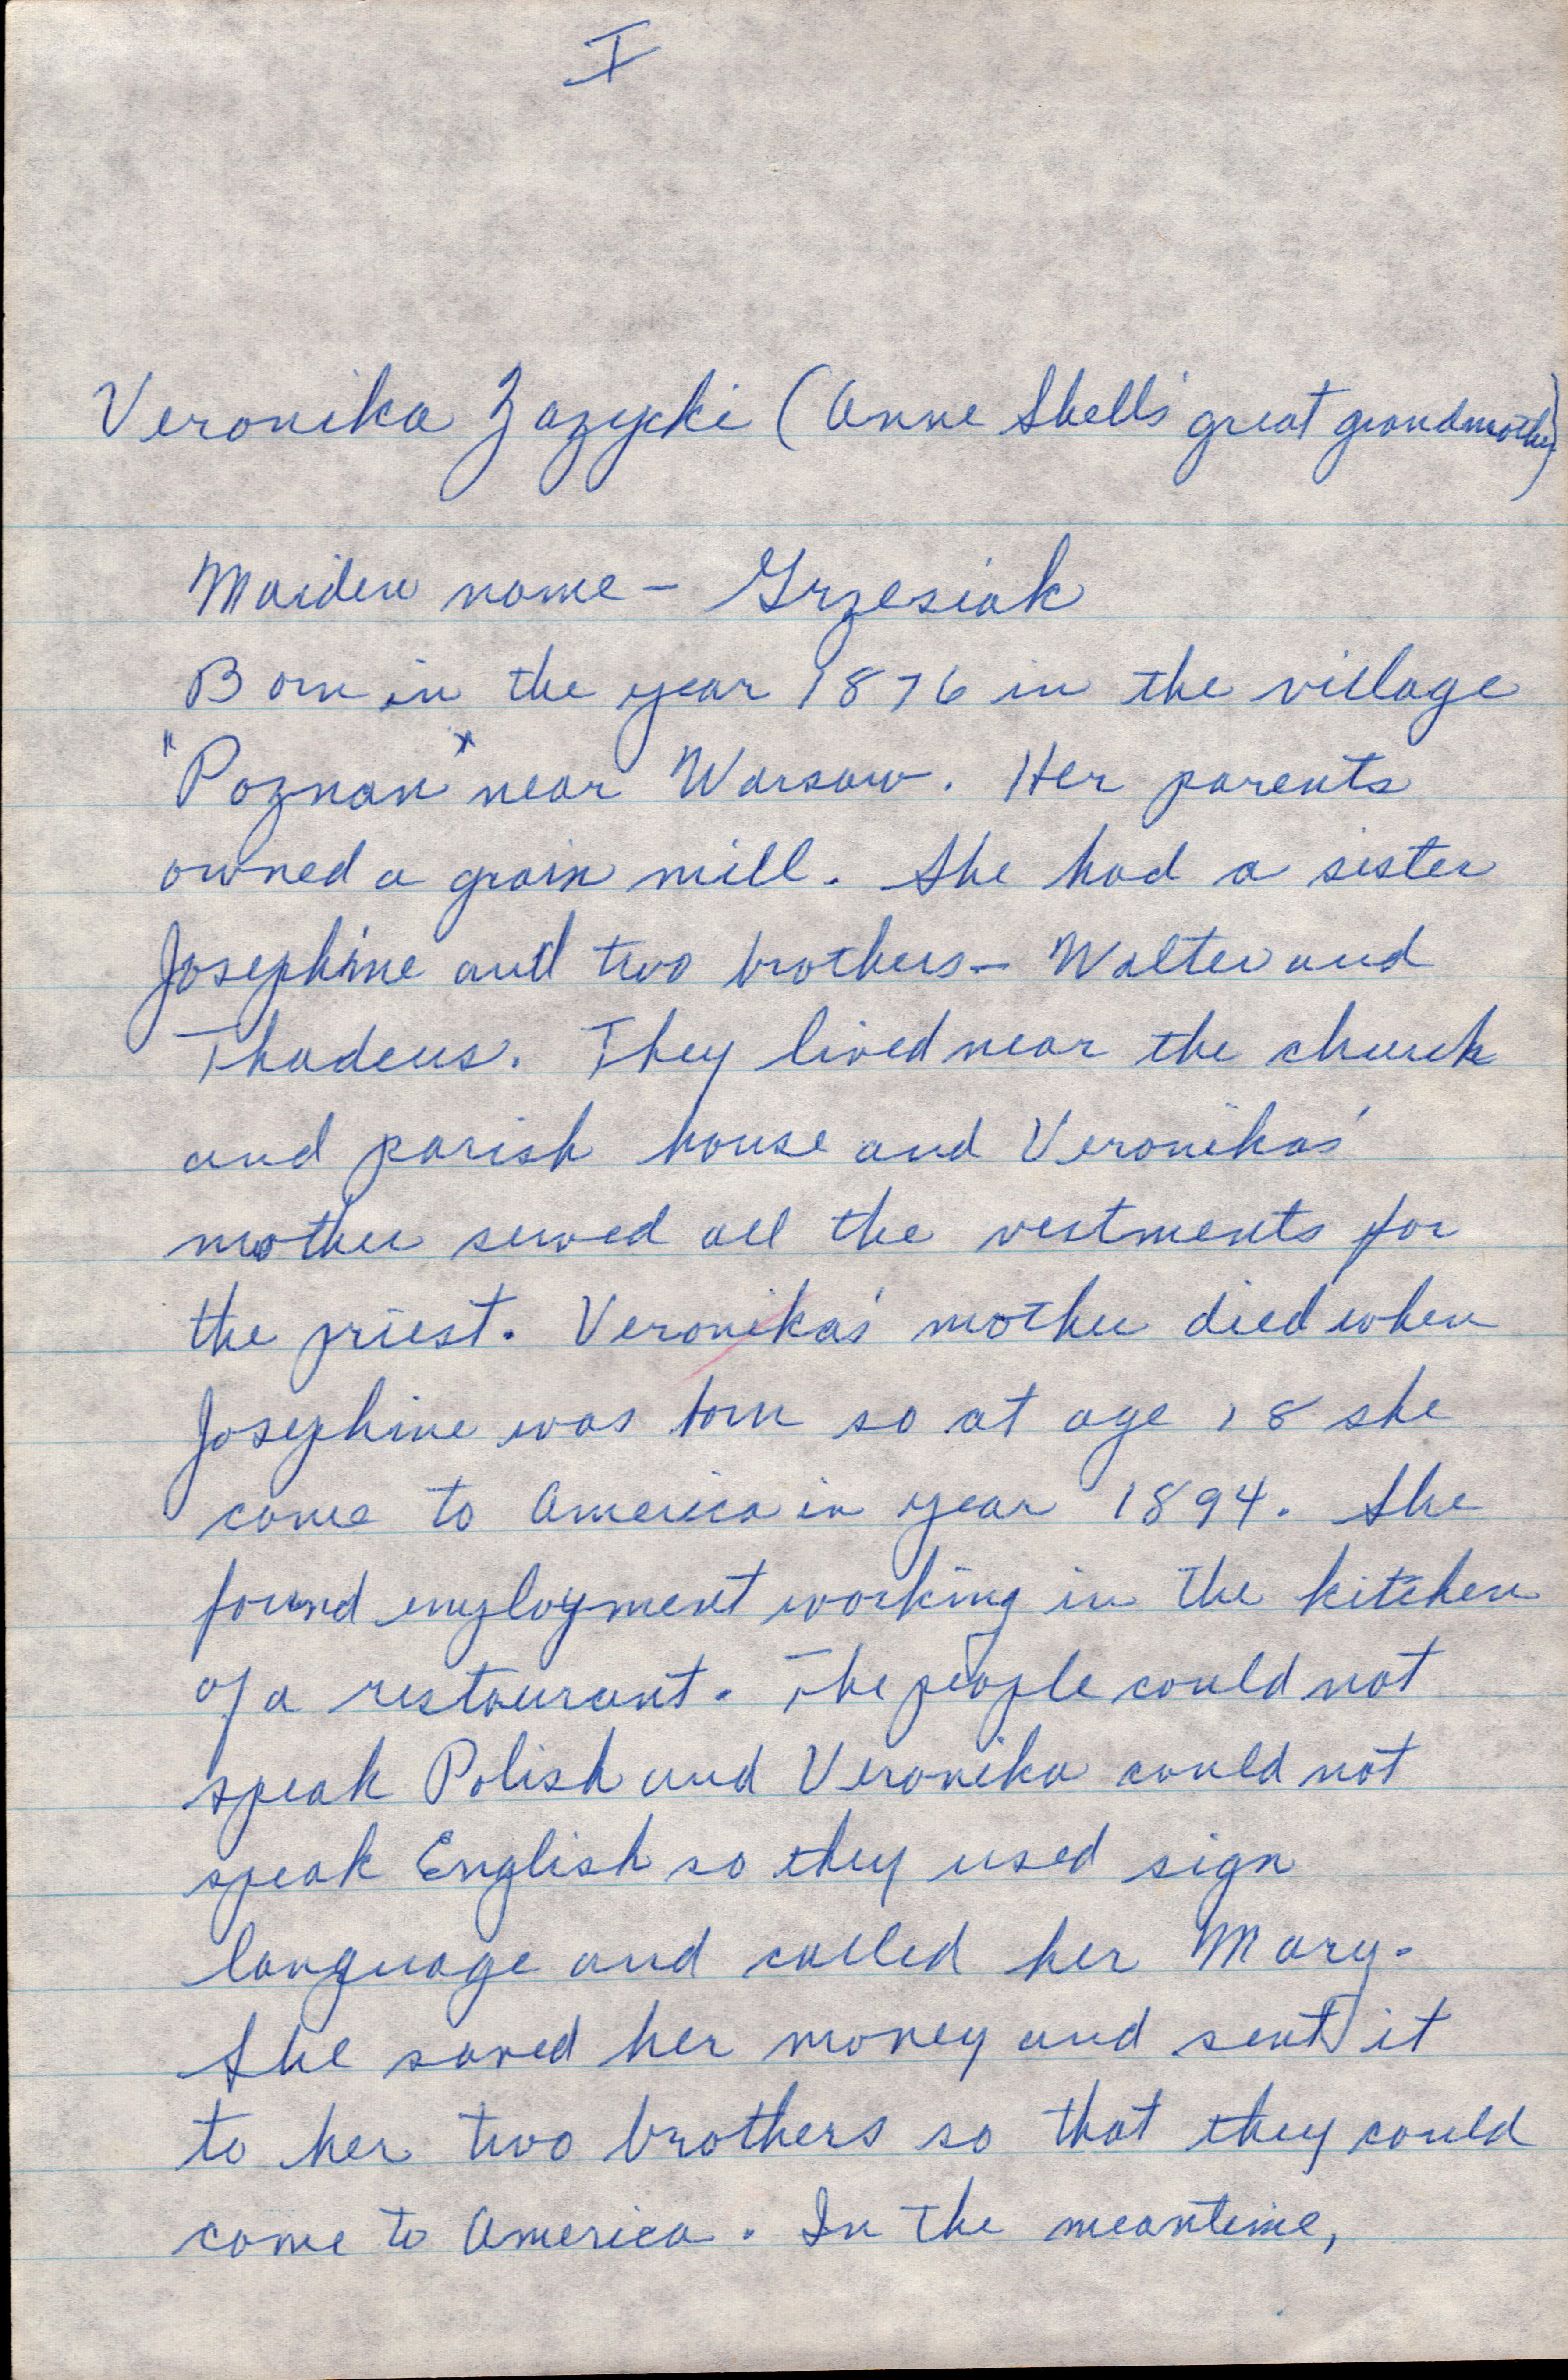 Letter from Grandma Helen 1977 page 8